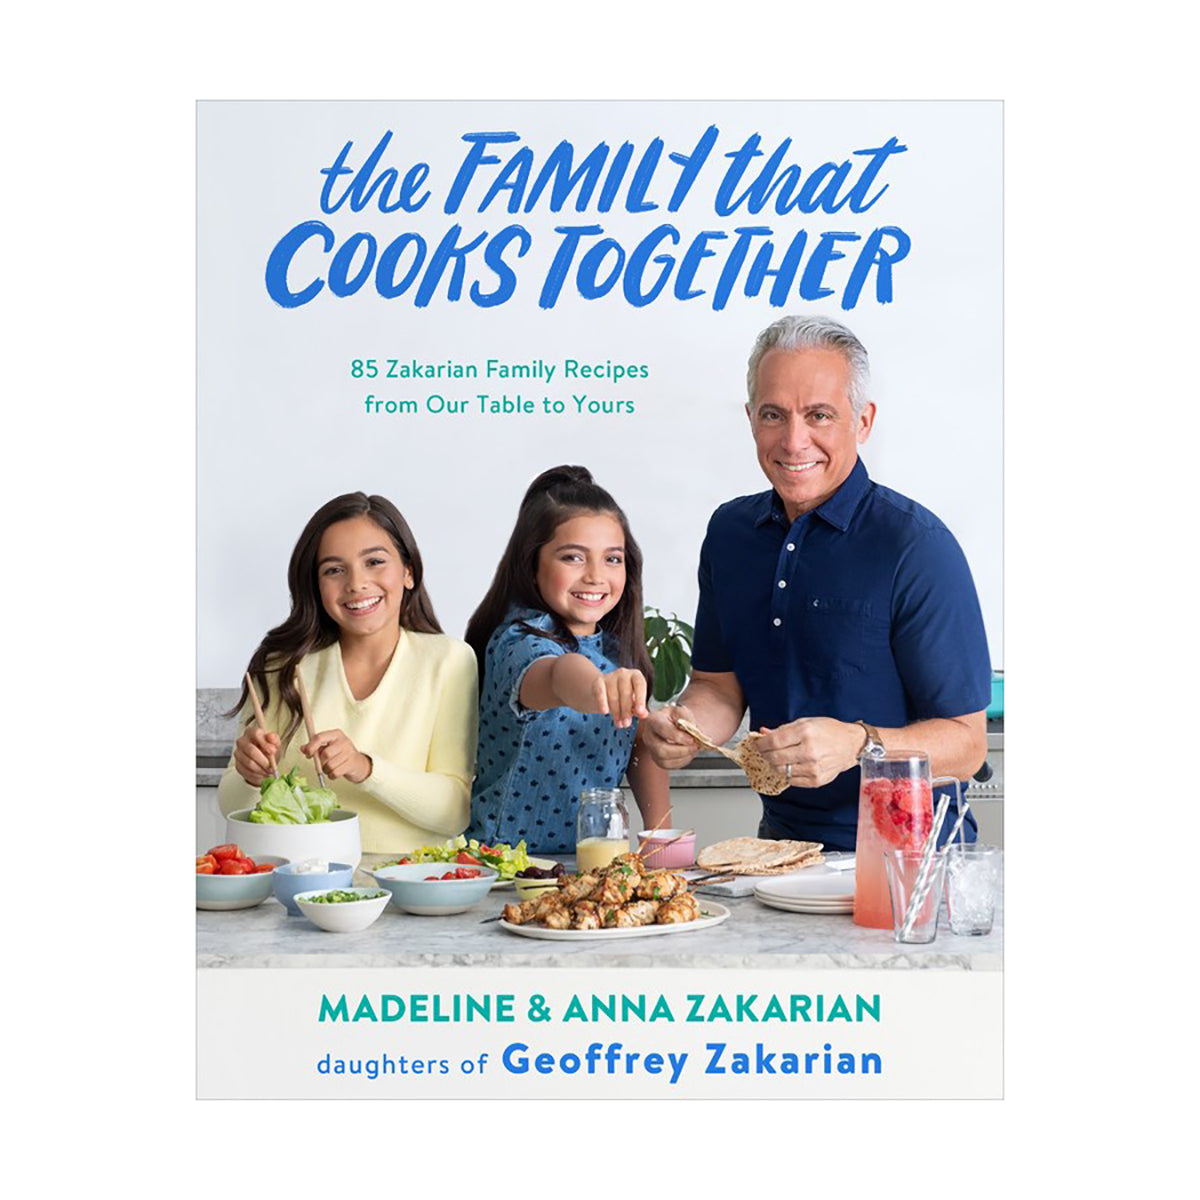 The Family that Cooks Together (Baker's Dozen Bundle) - Signed & Personalized